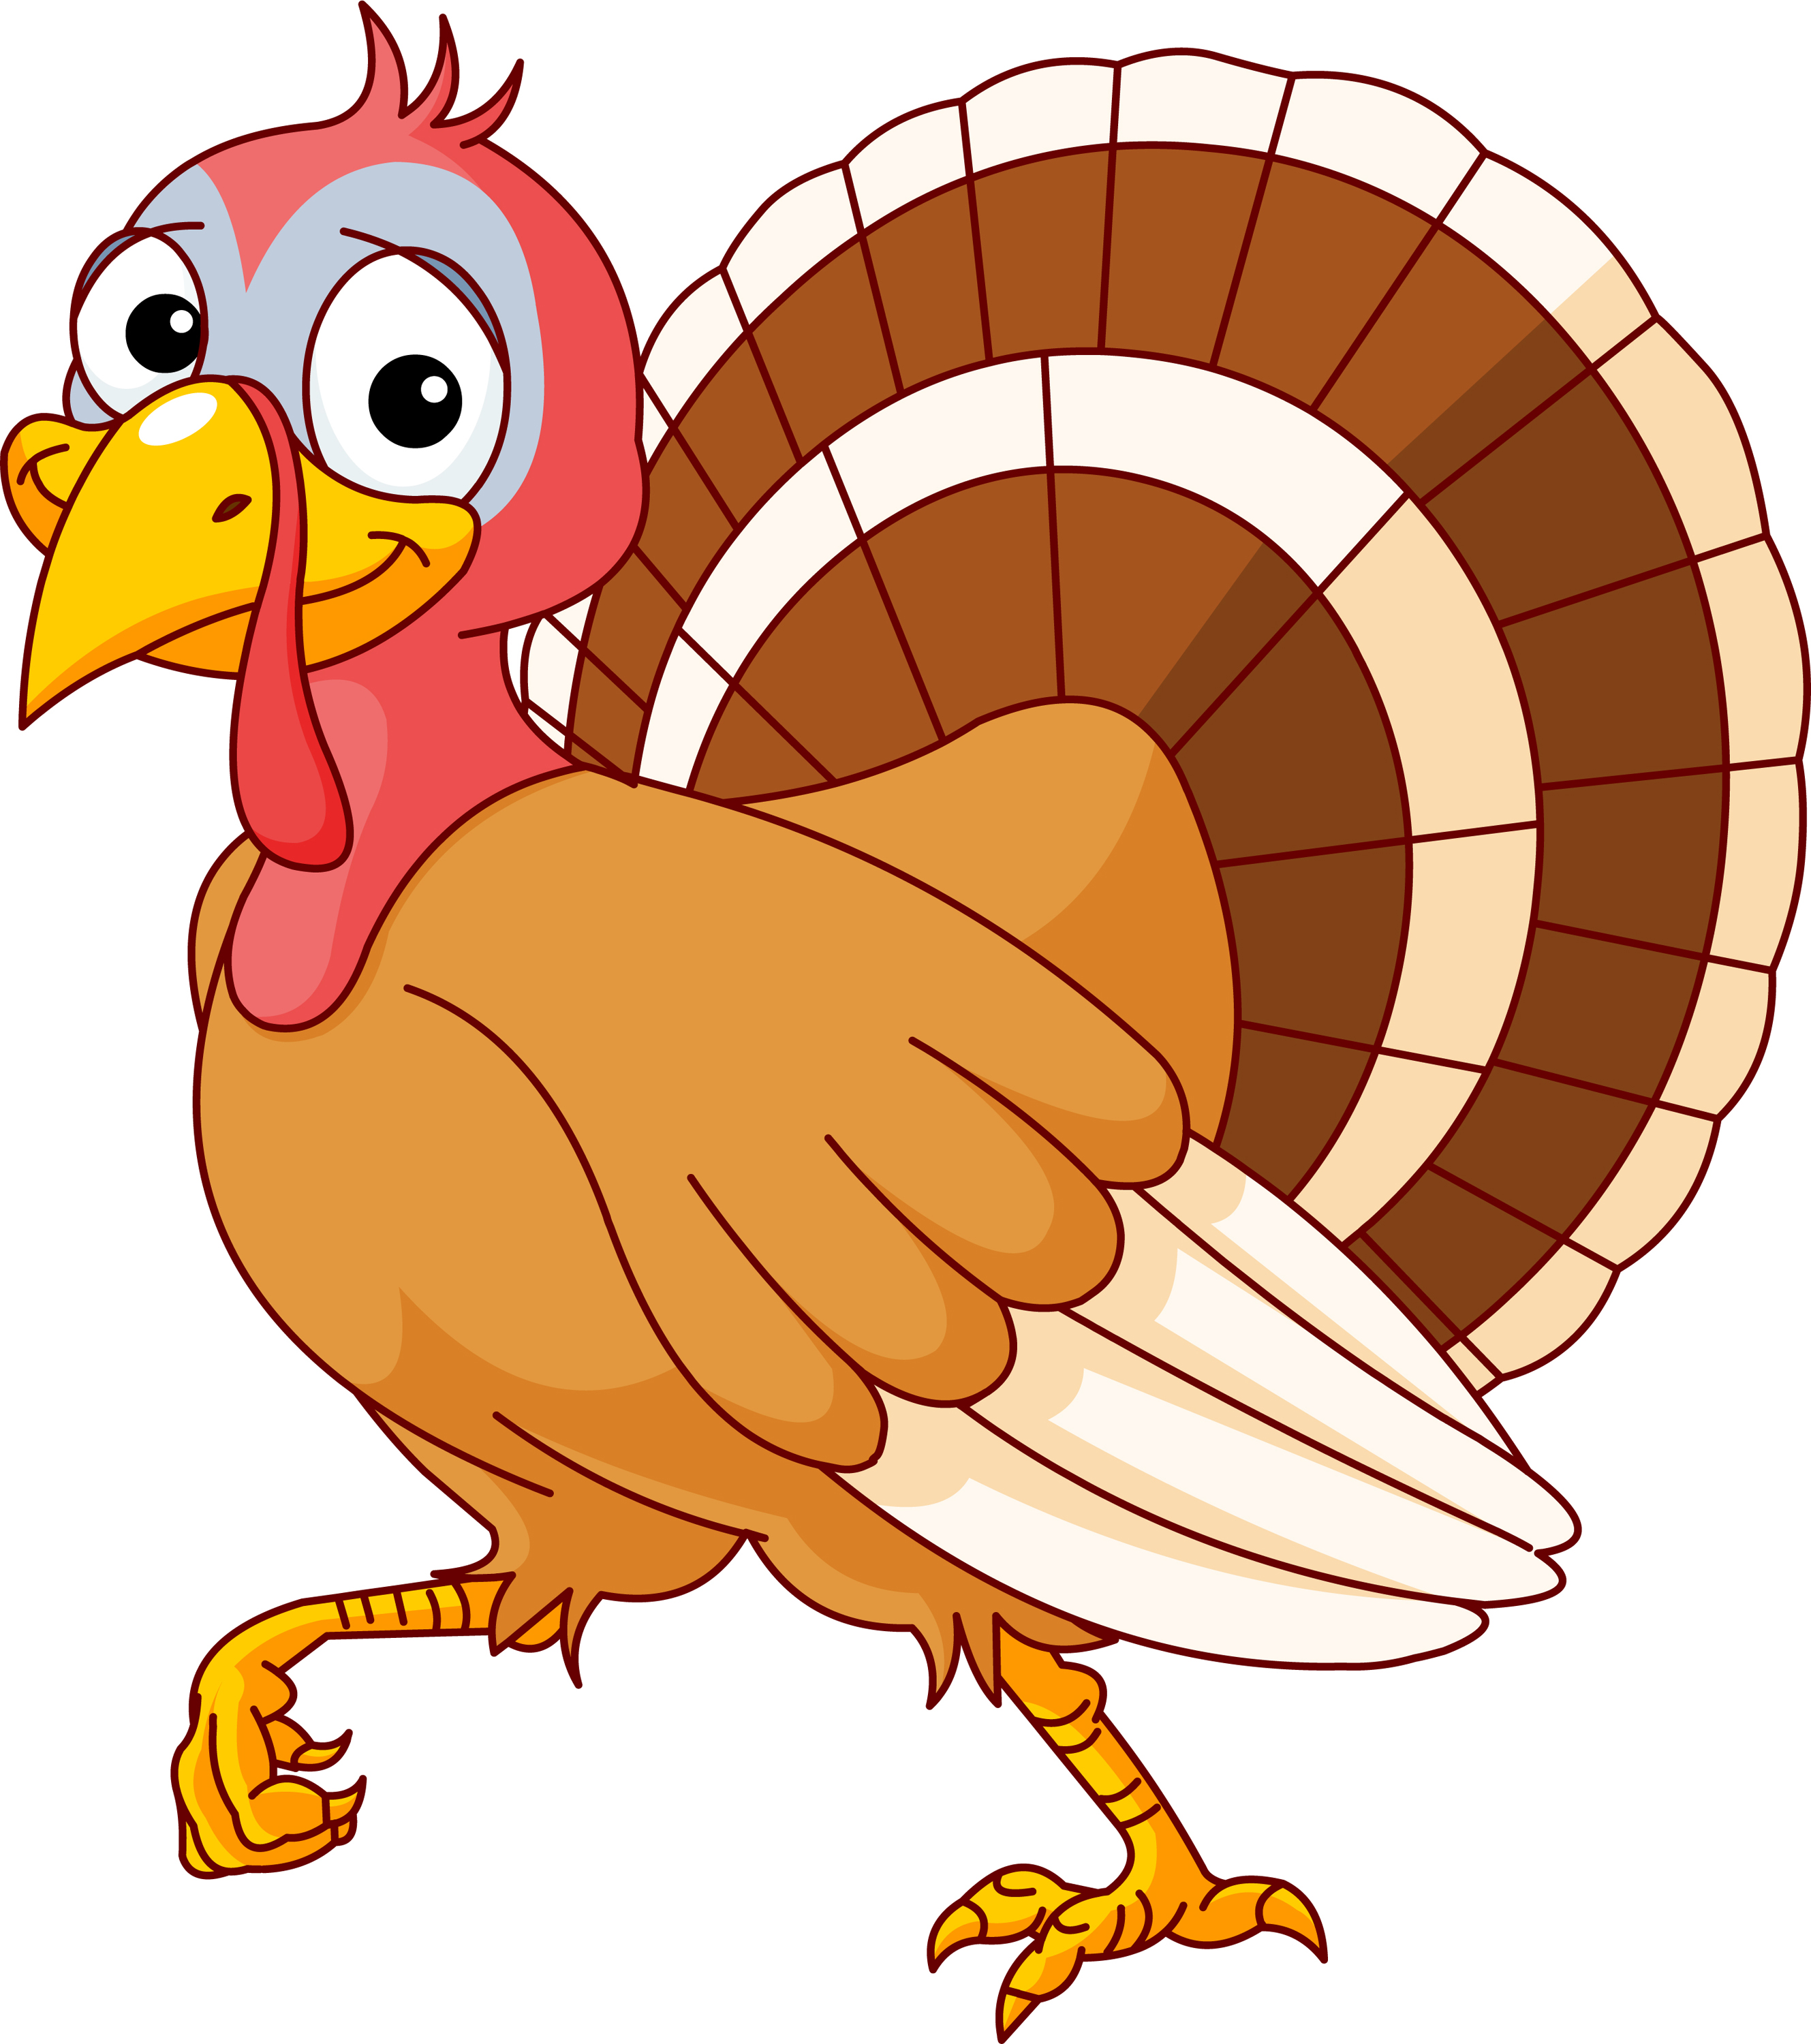 thanksgiving clipart at getdrawings com free for personal use rh getdrawings com free turkey clip art black and white free turkey clipart thanksgiving